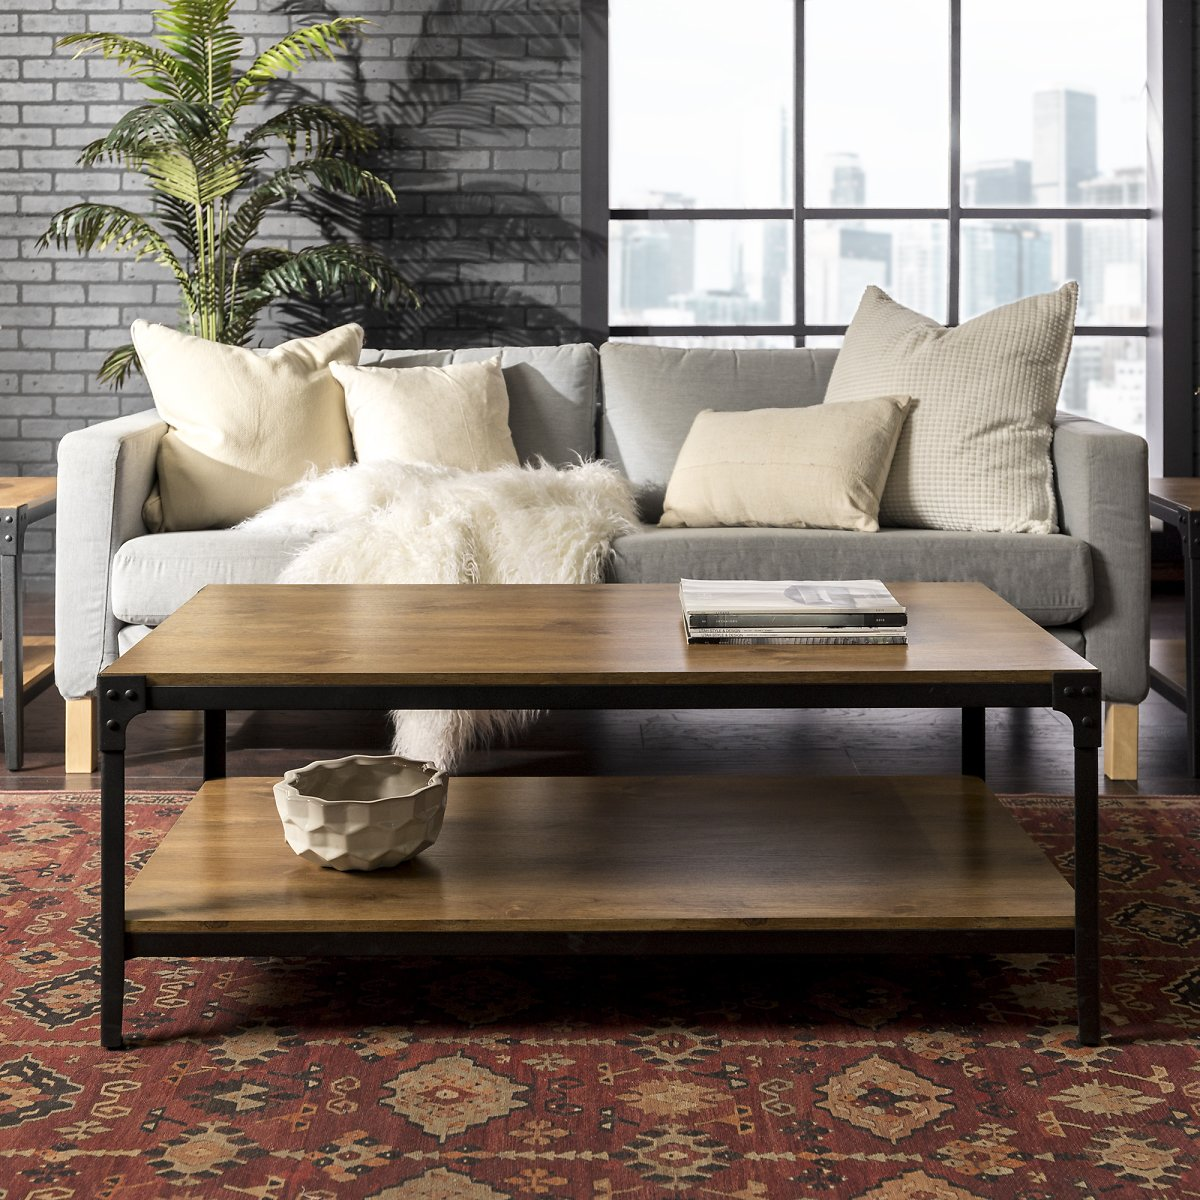 Wilson Riveted Barnwood Coffee Table By River Street Designs